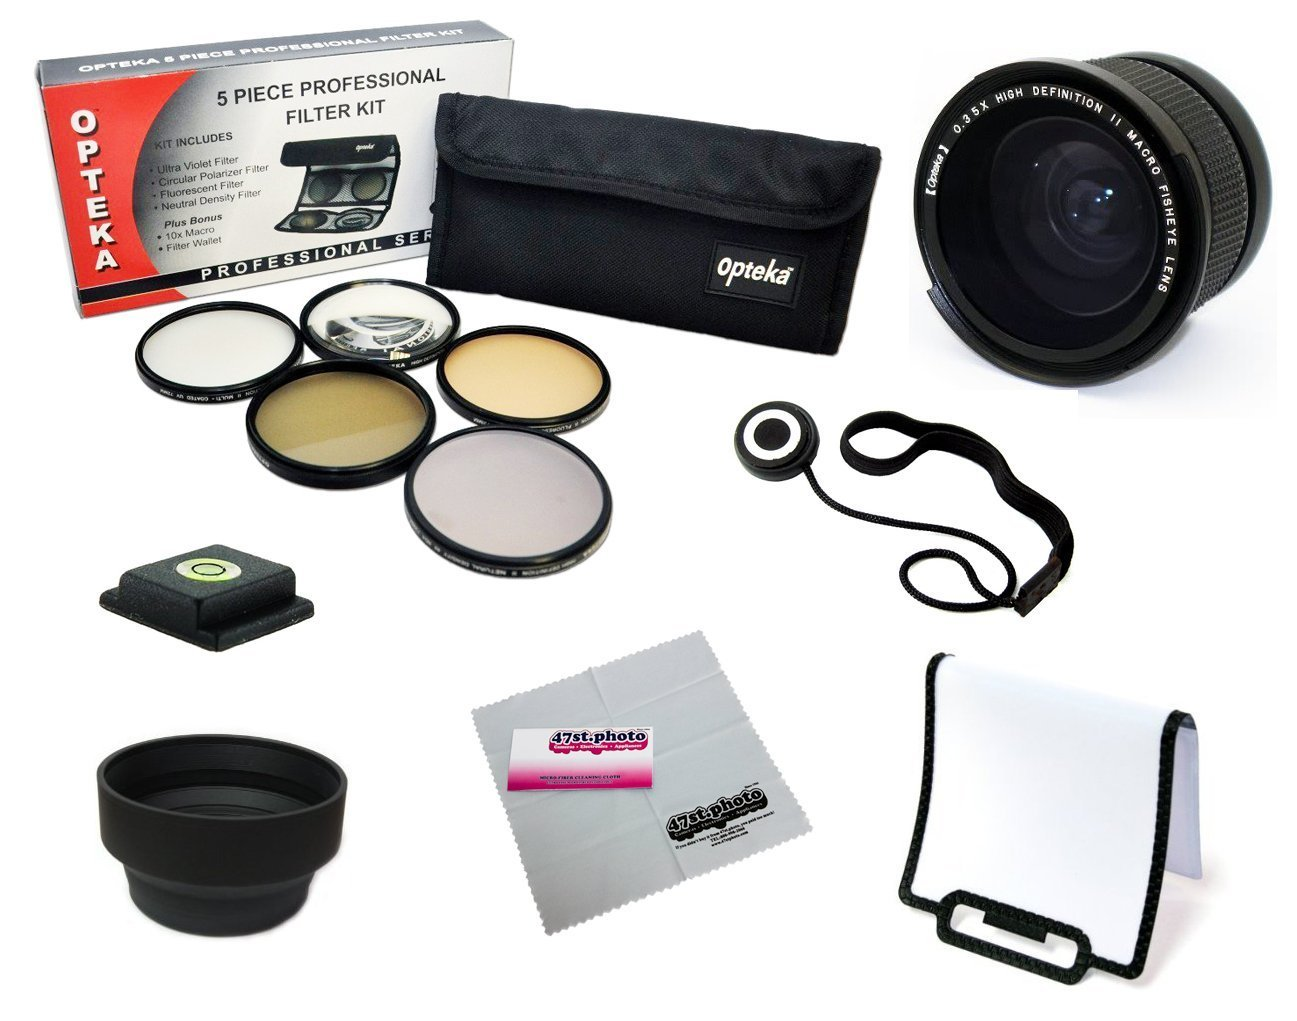 52MM Professional .35x Lens + Filter Accessory Kit for NIKON D7100, D7000, D5200, D5100, D5000, D3200, D3100, D3000, D90 and D80 DSLR Cameras- Includes Opteka .35x Fisheye Lens + Filter Kit (UV, CPL, FLD, ND4 and 10x Macro) + Carry Pouch + Flash Diffuser